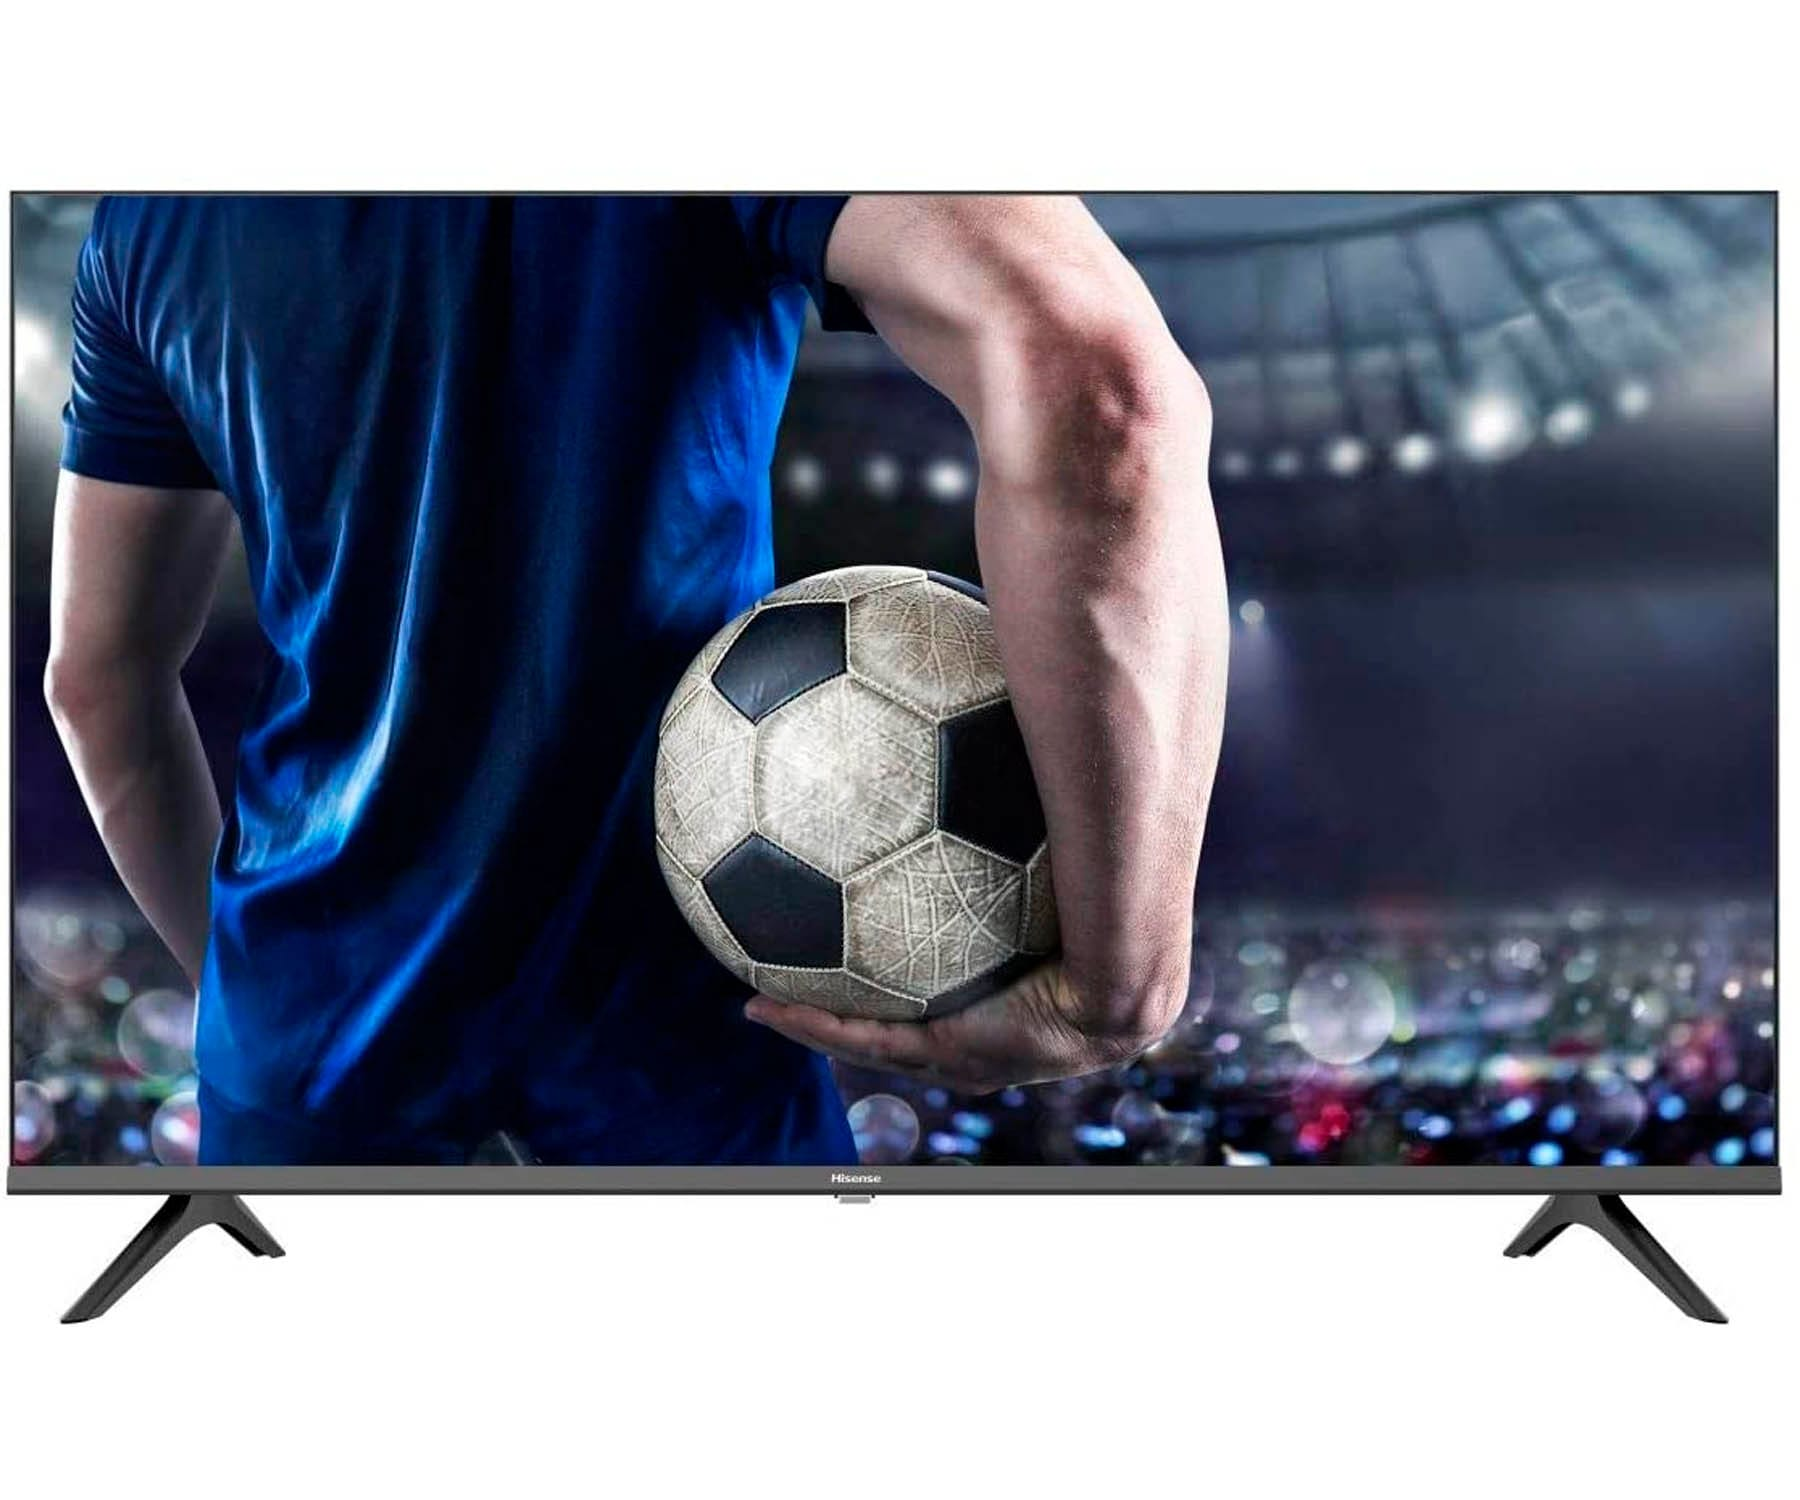 HISENSE H32A5100F TELEVISOR 32'' LCD DIRECT LED HD READY 600PCI CI+ HDMI USB REPRODUCTOR MULTIMEDIA